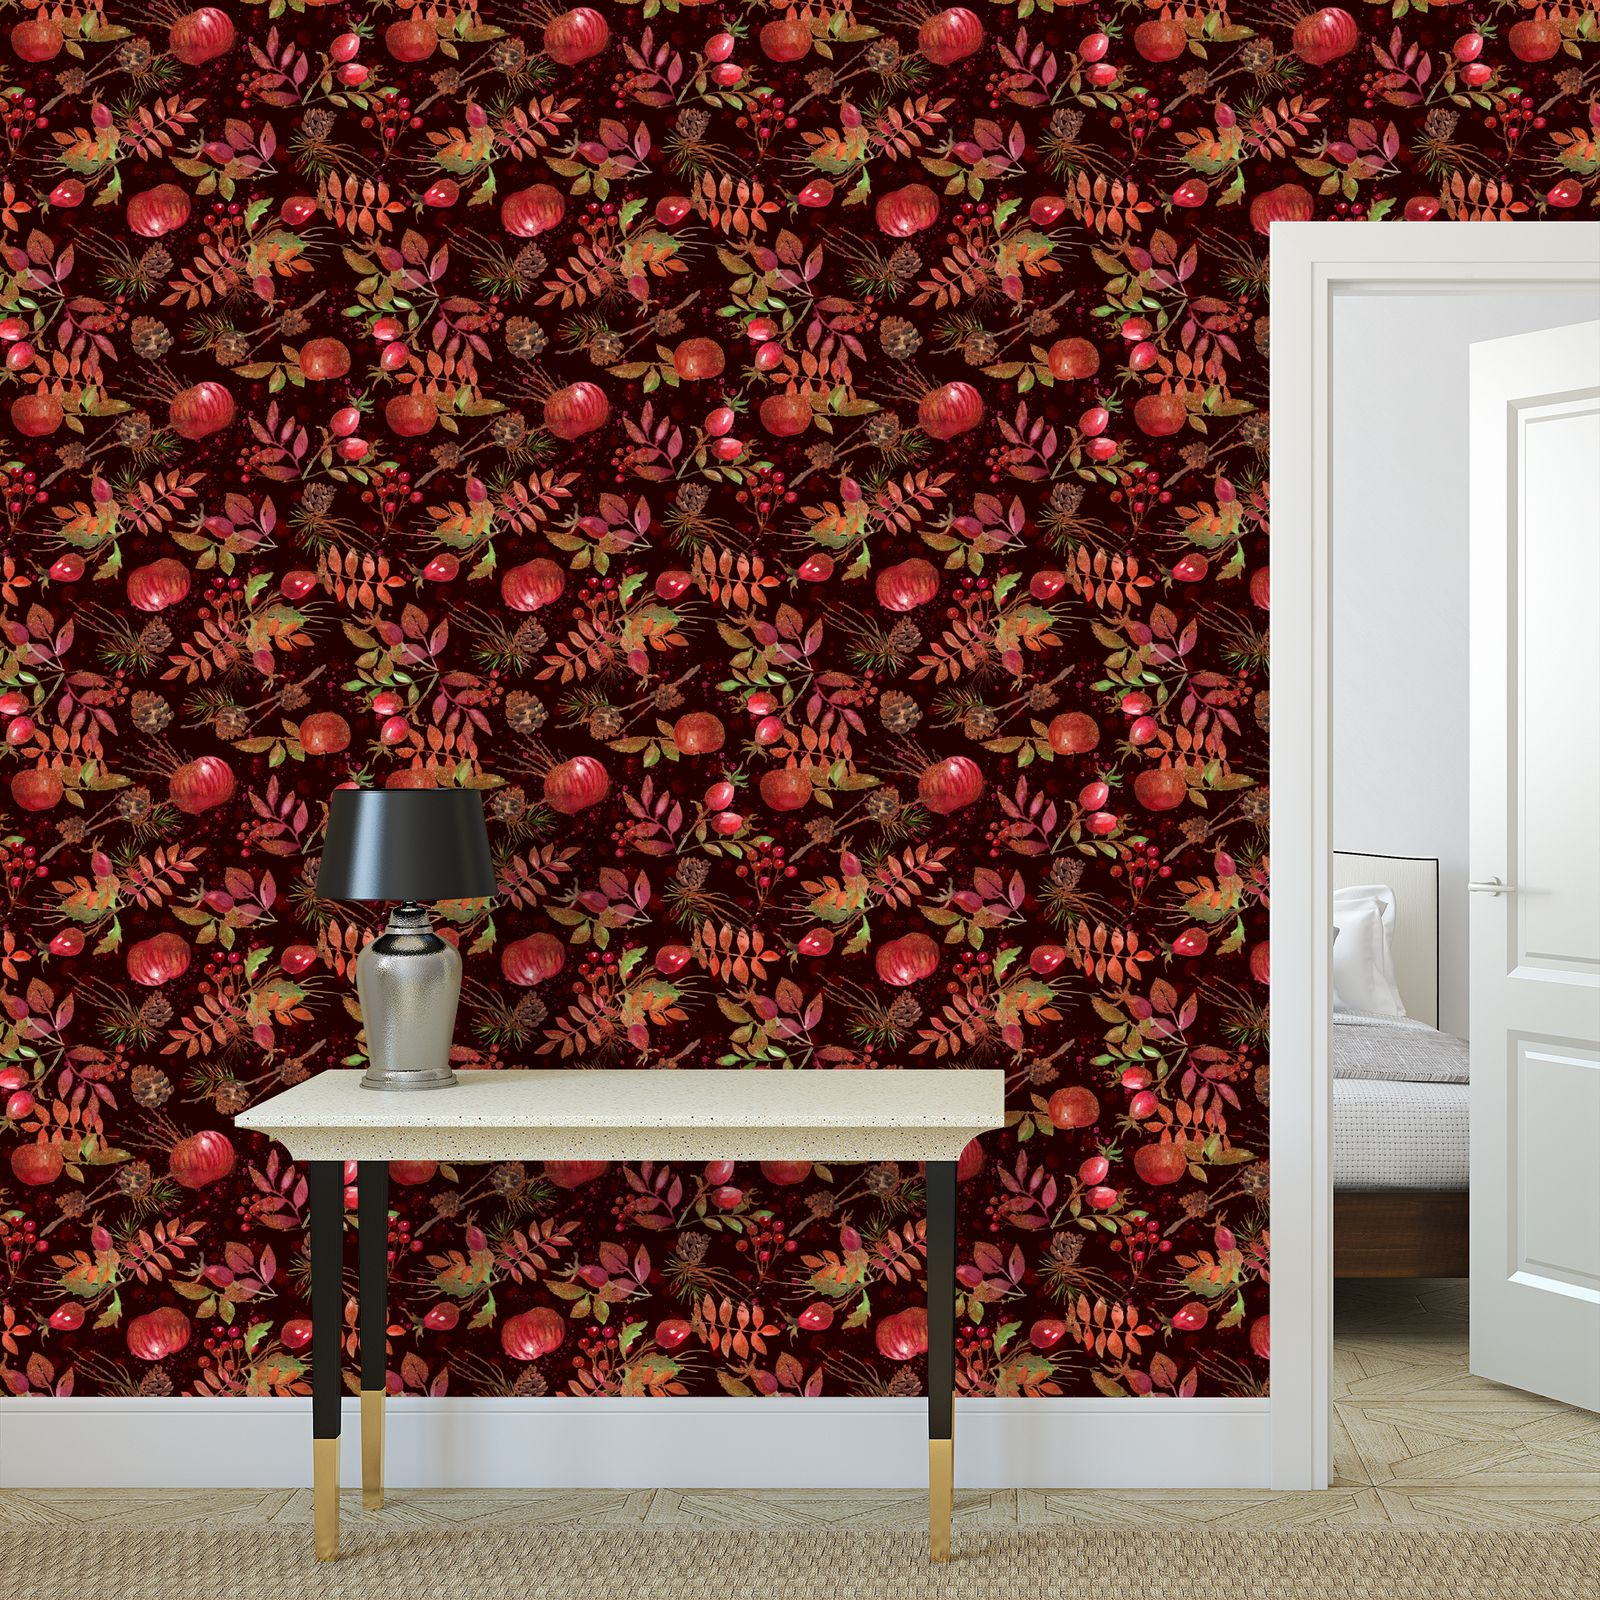 Autumn Garden - Wallpaper Rolls - orchard, watercolor gift, natural, picturesque, apples, floral